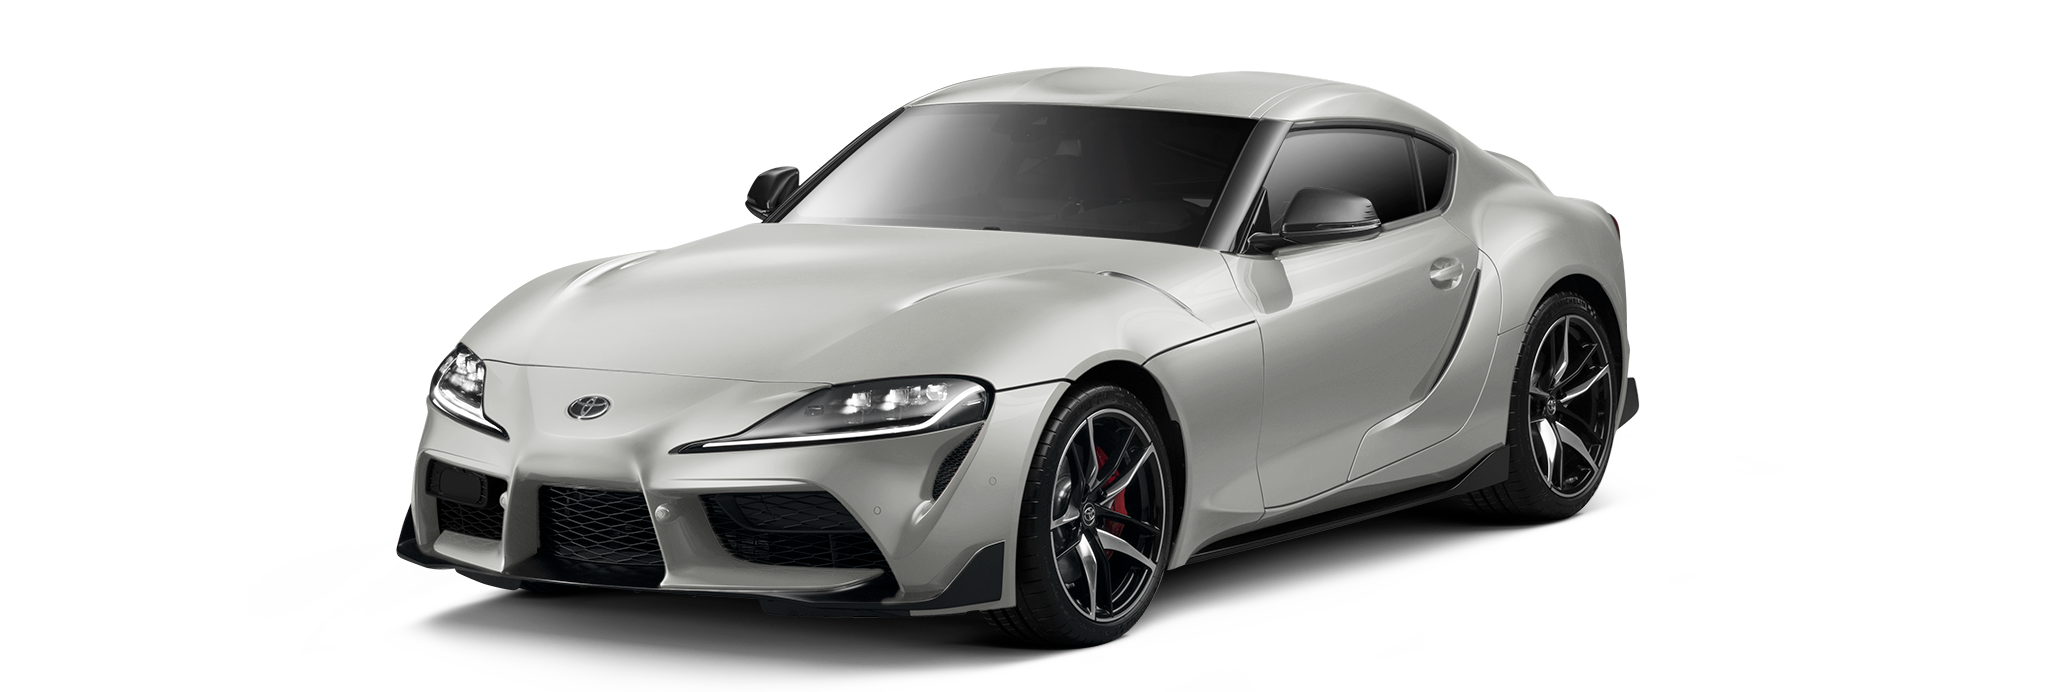 toyota supra white metallic 2020